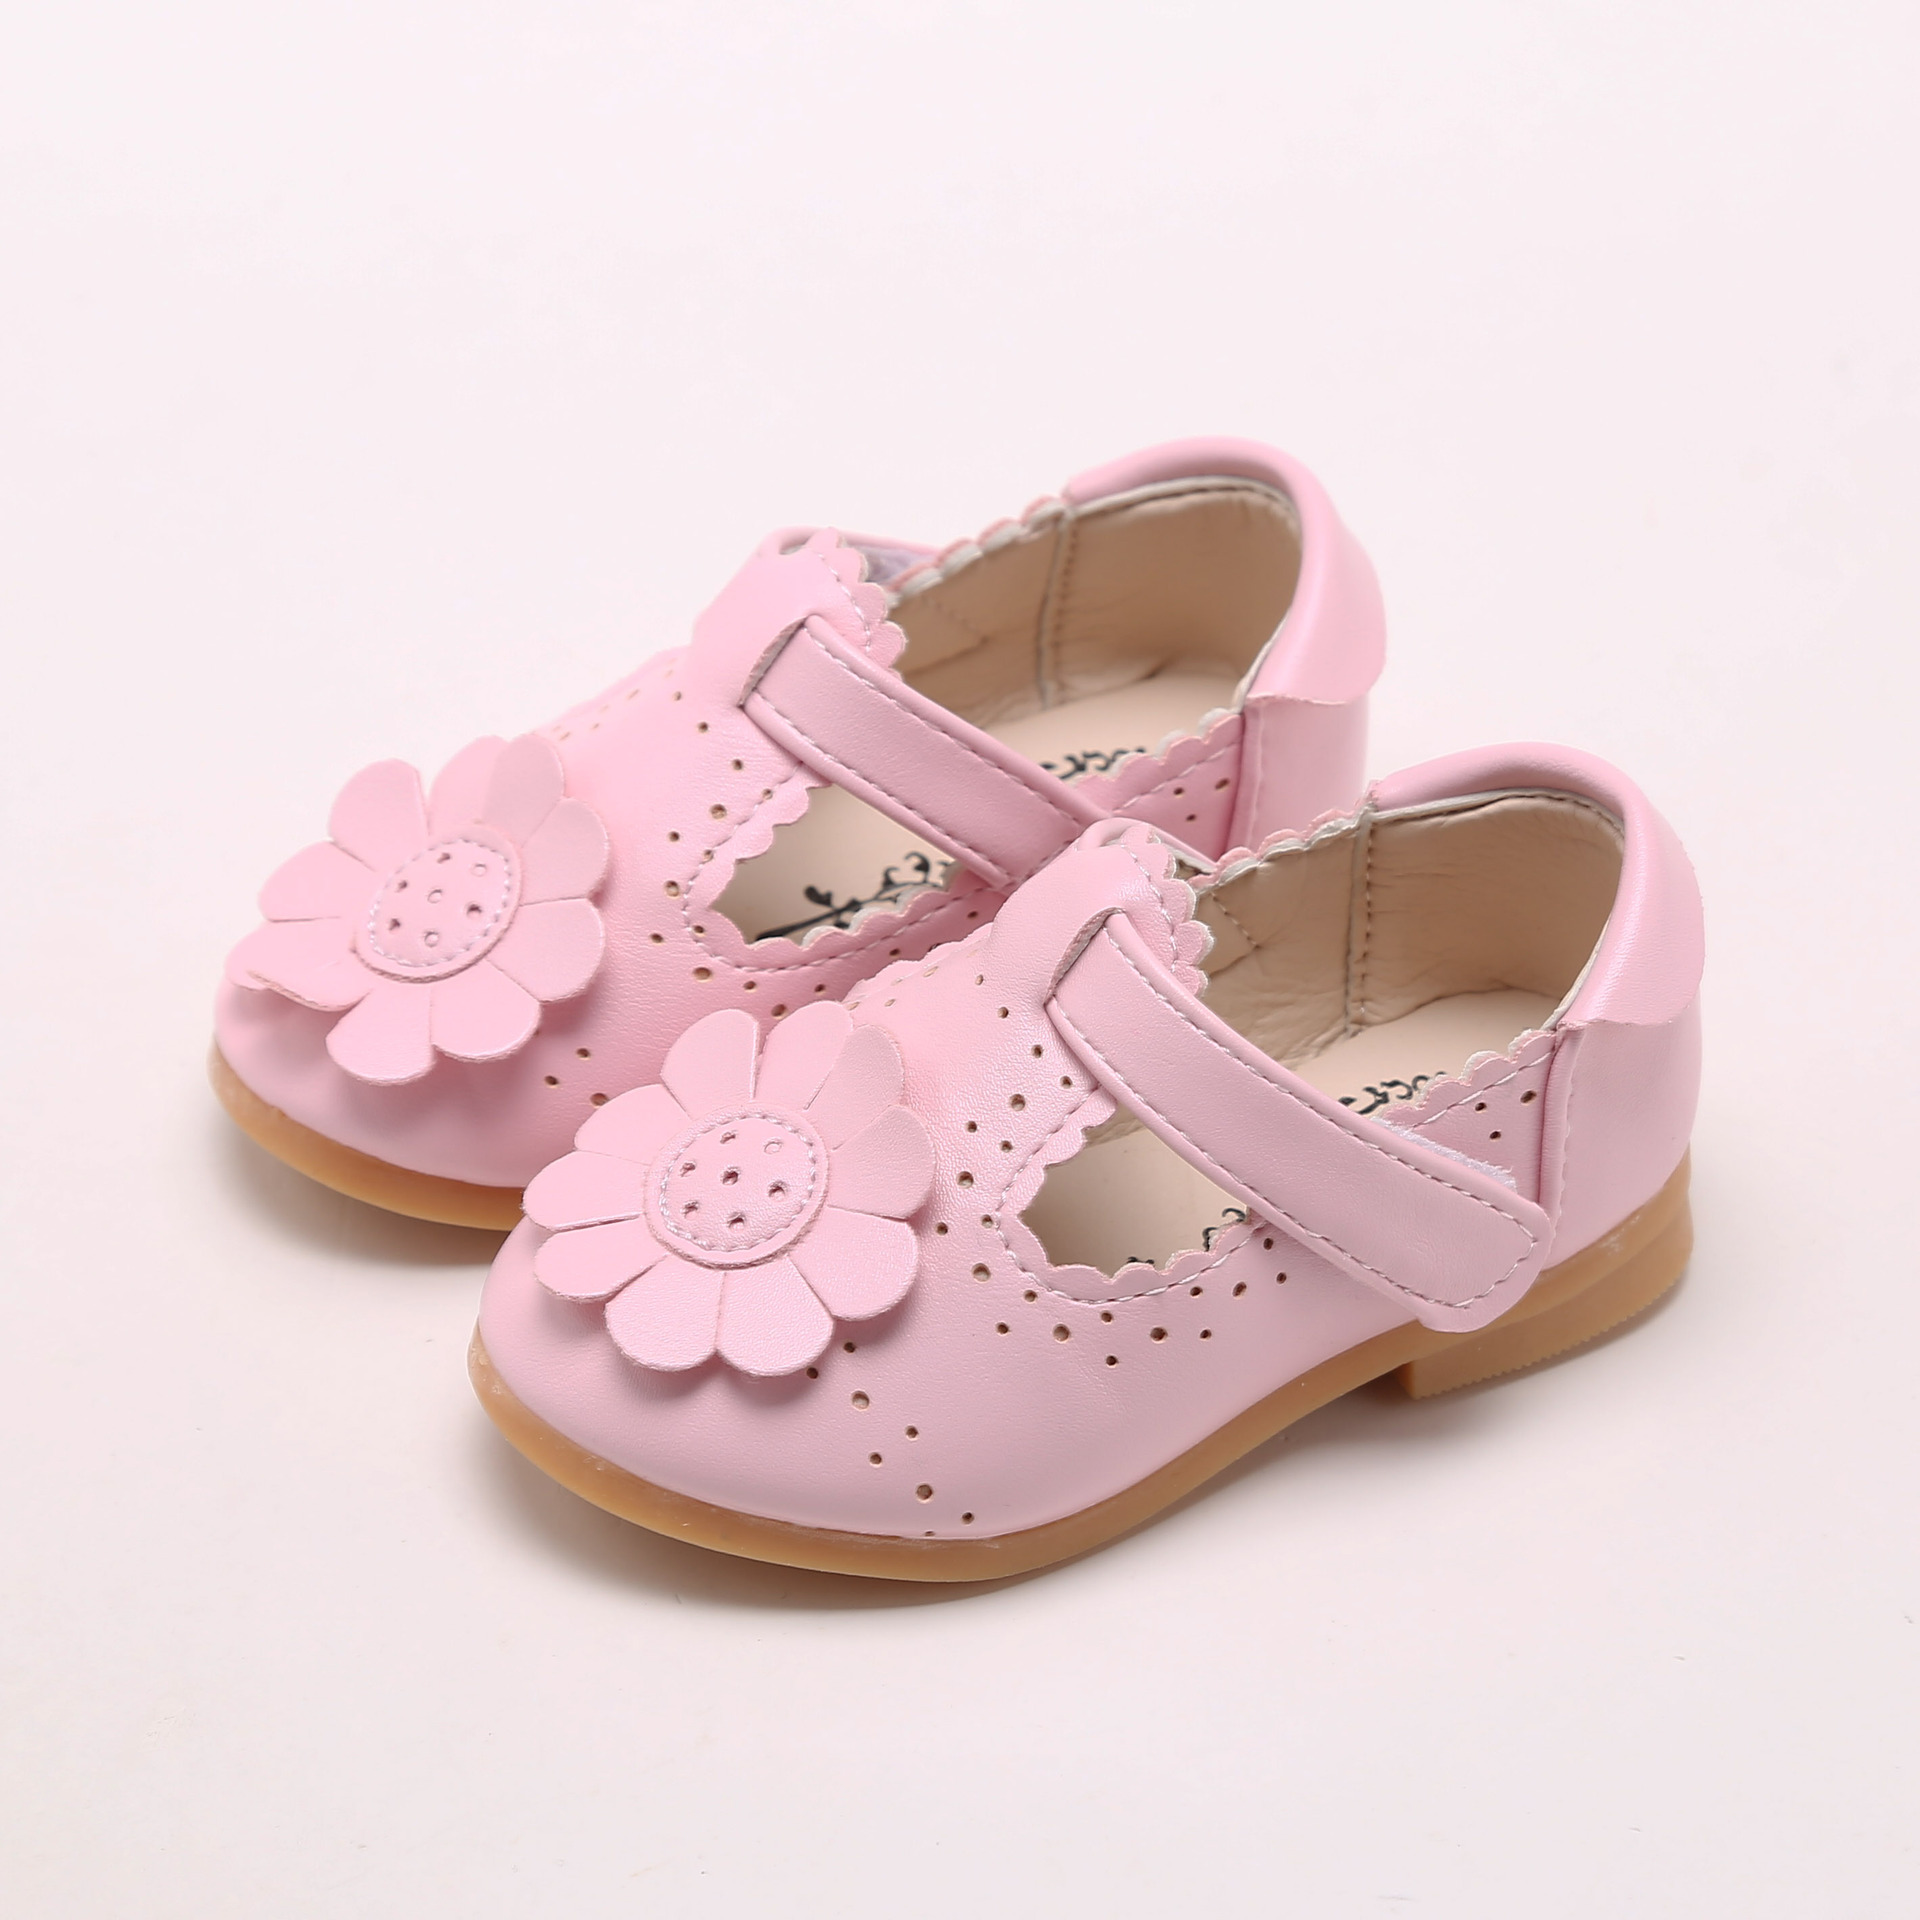 Mareya Trade Hitomagic Child Girl Shoe Fashion Flower Leather